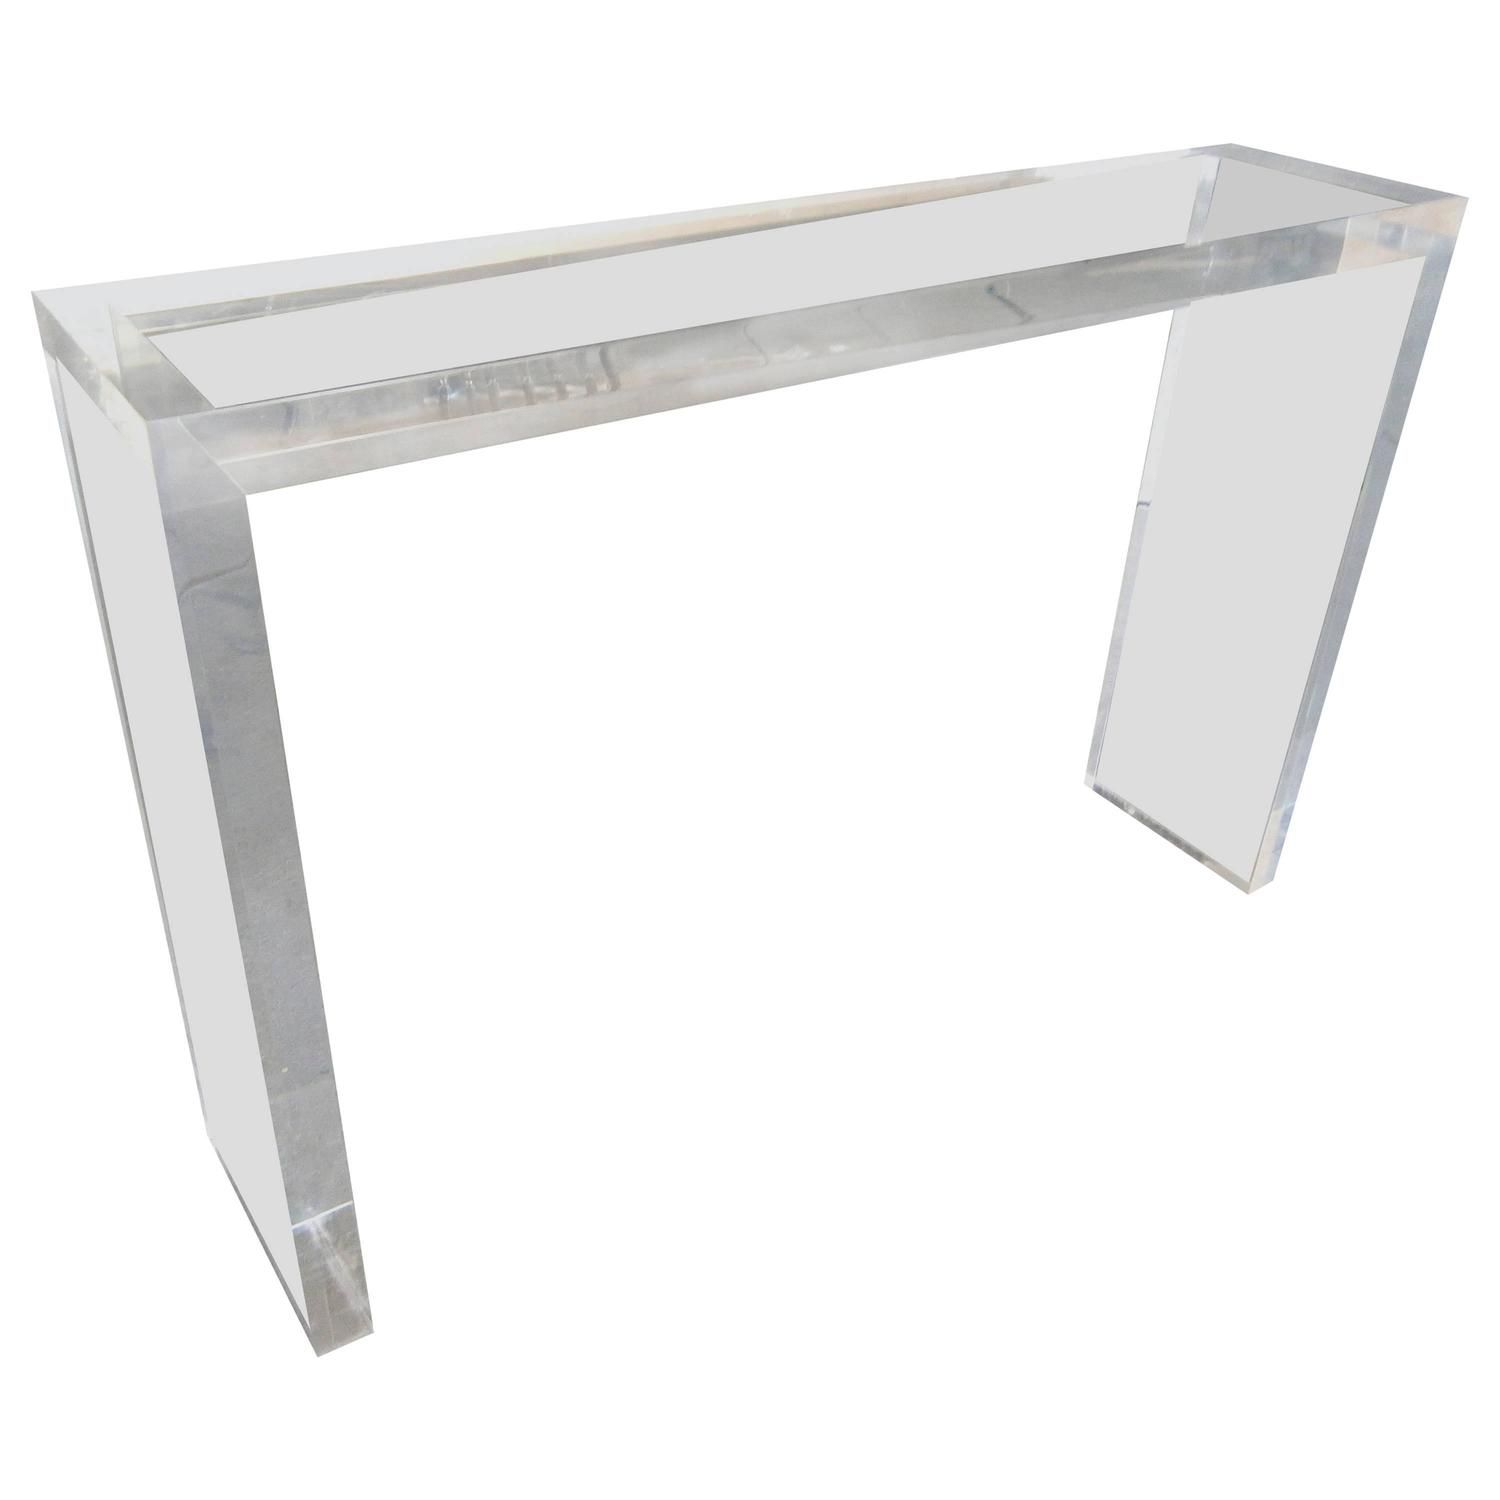 Minimalist Custom Made Thick Lucite Console Table By Carmichael 1 Console Table Table Vintage Table